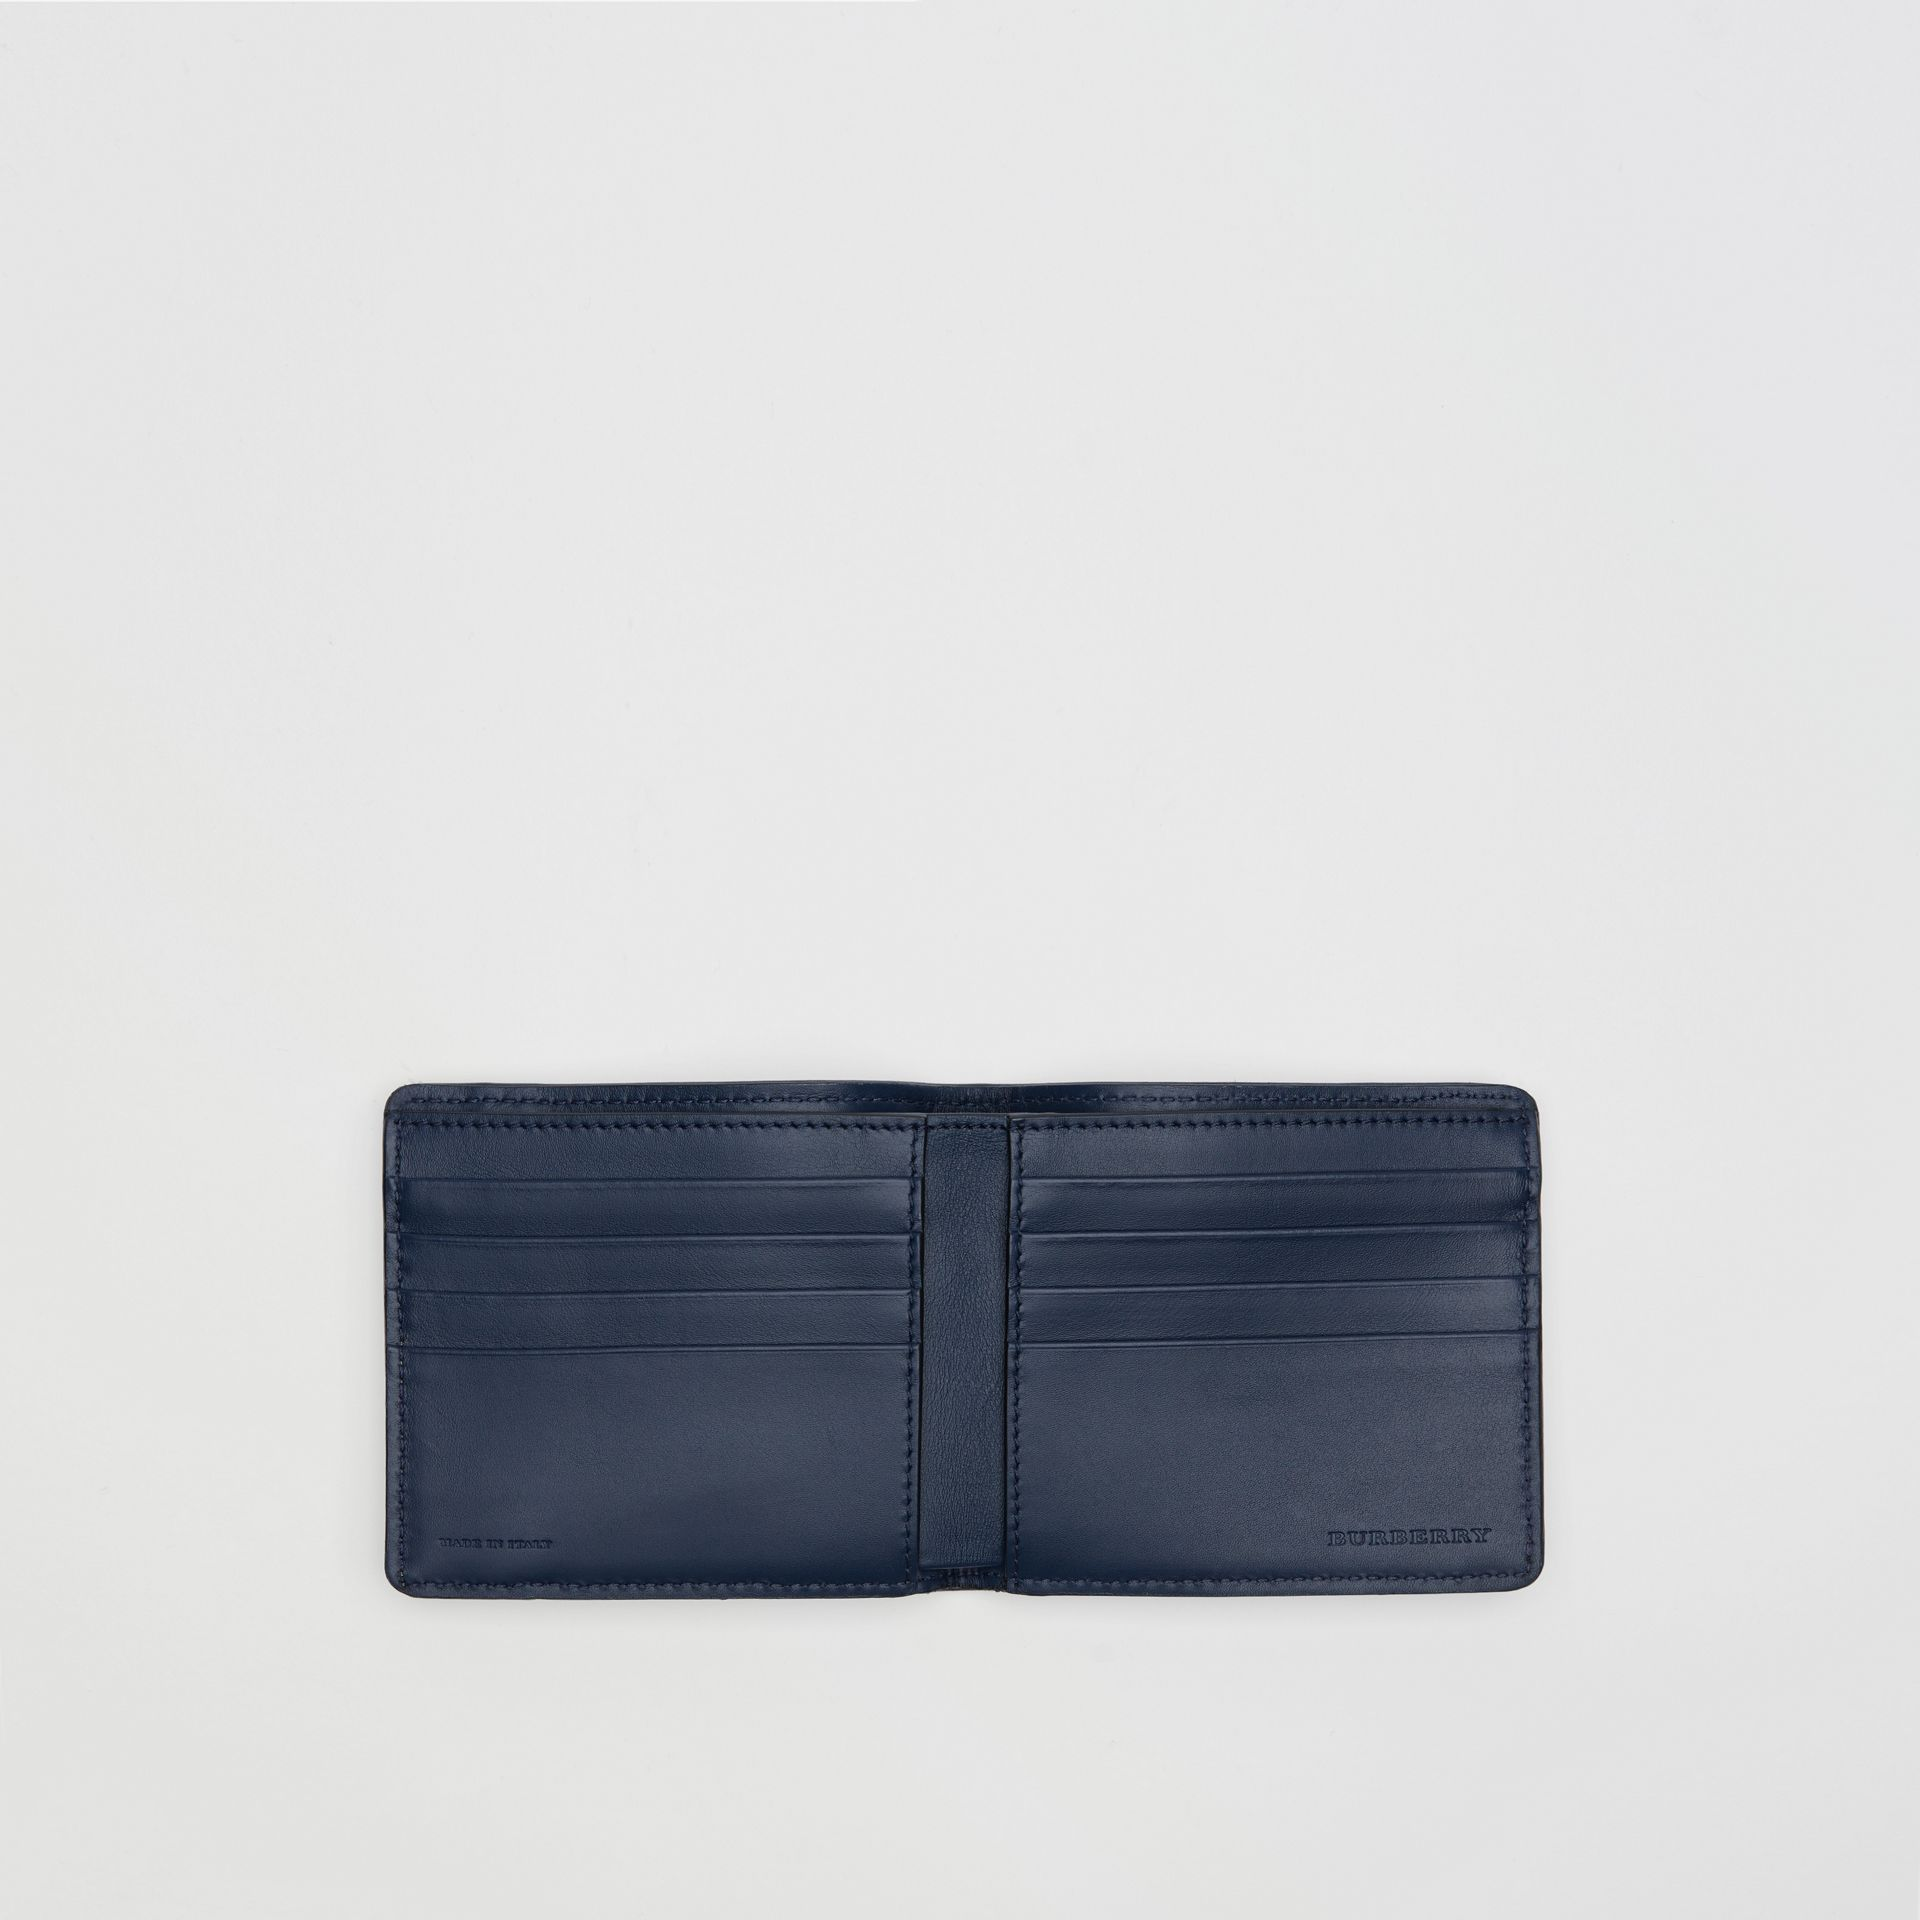 1983 Check and Leather International Bifold Wallet in Ink Blue - Men | Burberry - gallery image 3